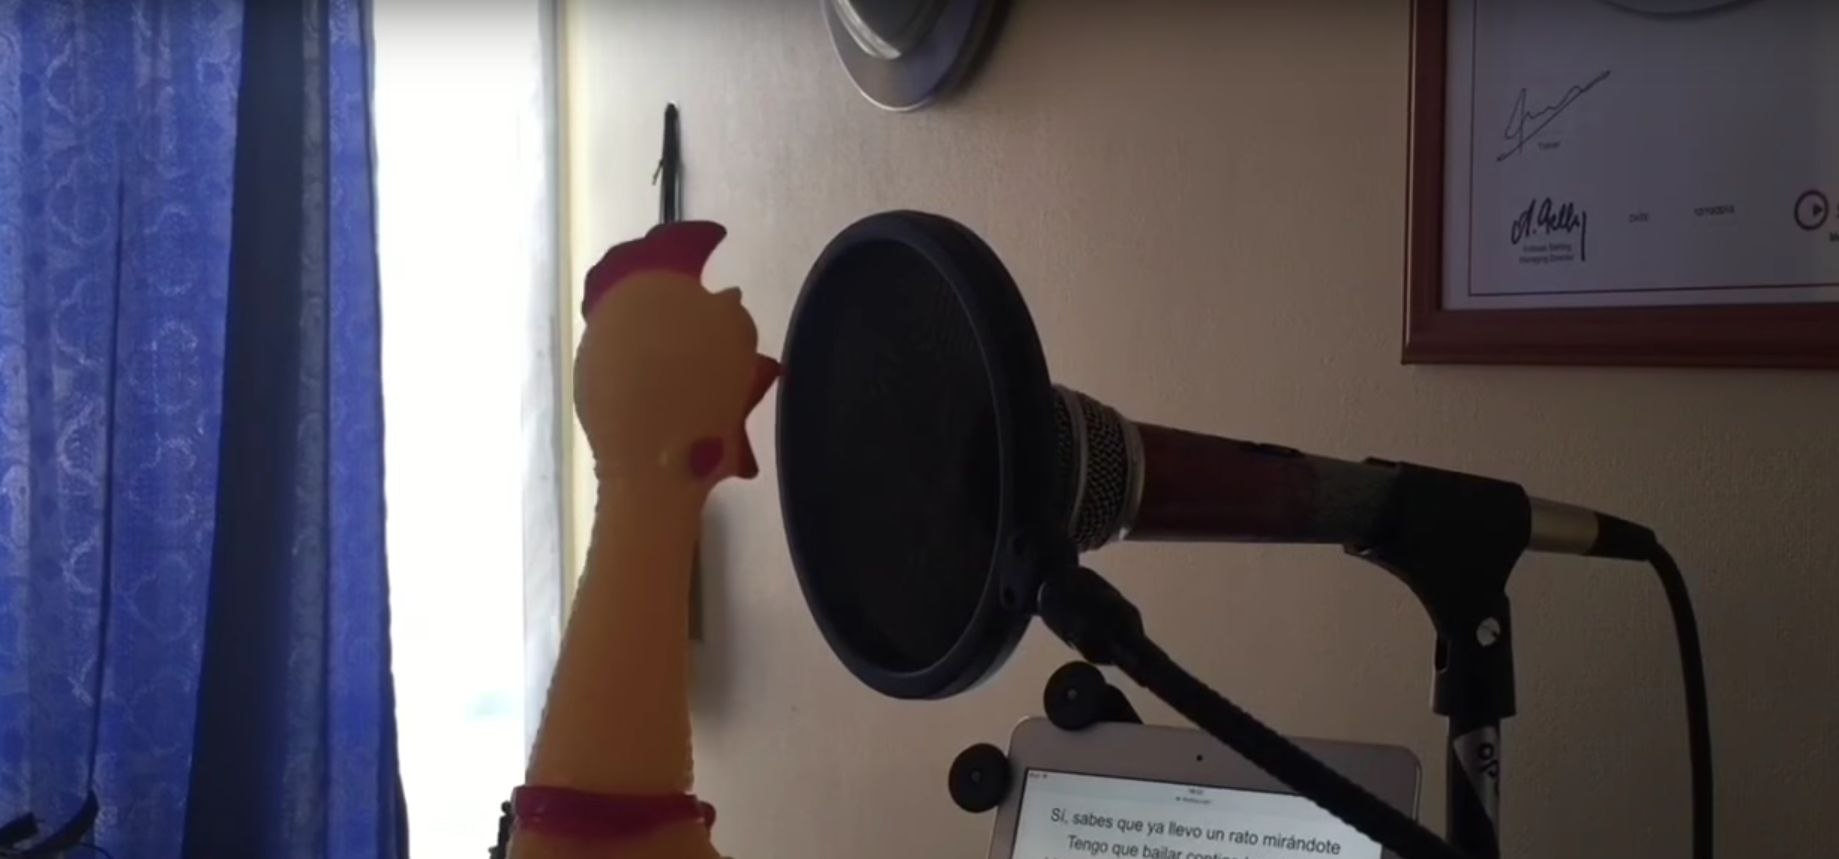 Watch This Rubber Chicken Sing 'Despacito' And Rethink Your Own